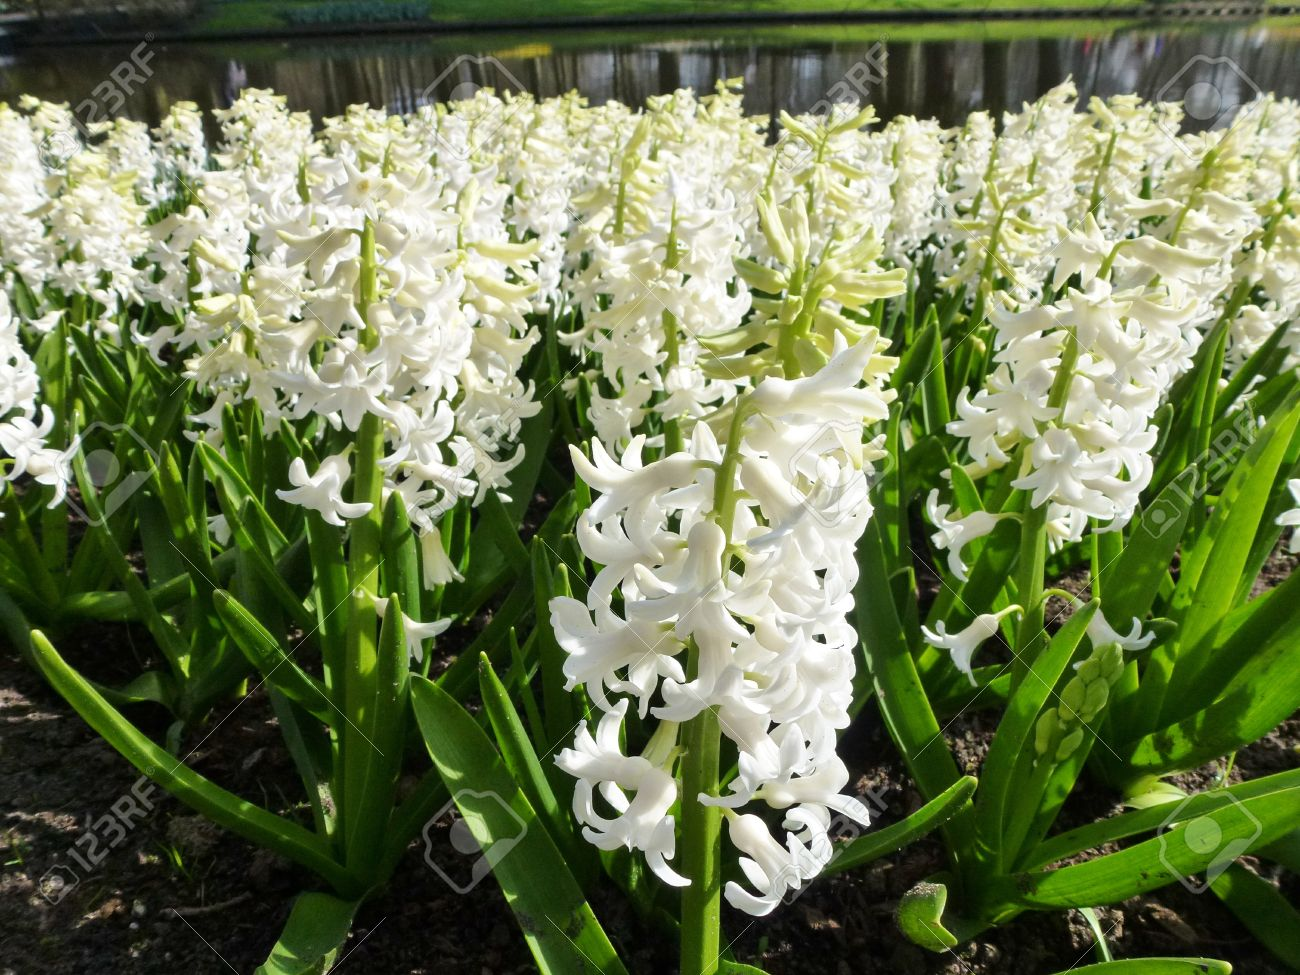 A Field With White Flowering Hyacinth Bulbs In Spring Stock Photo